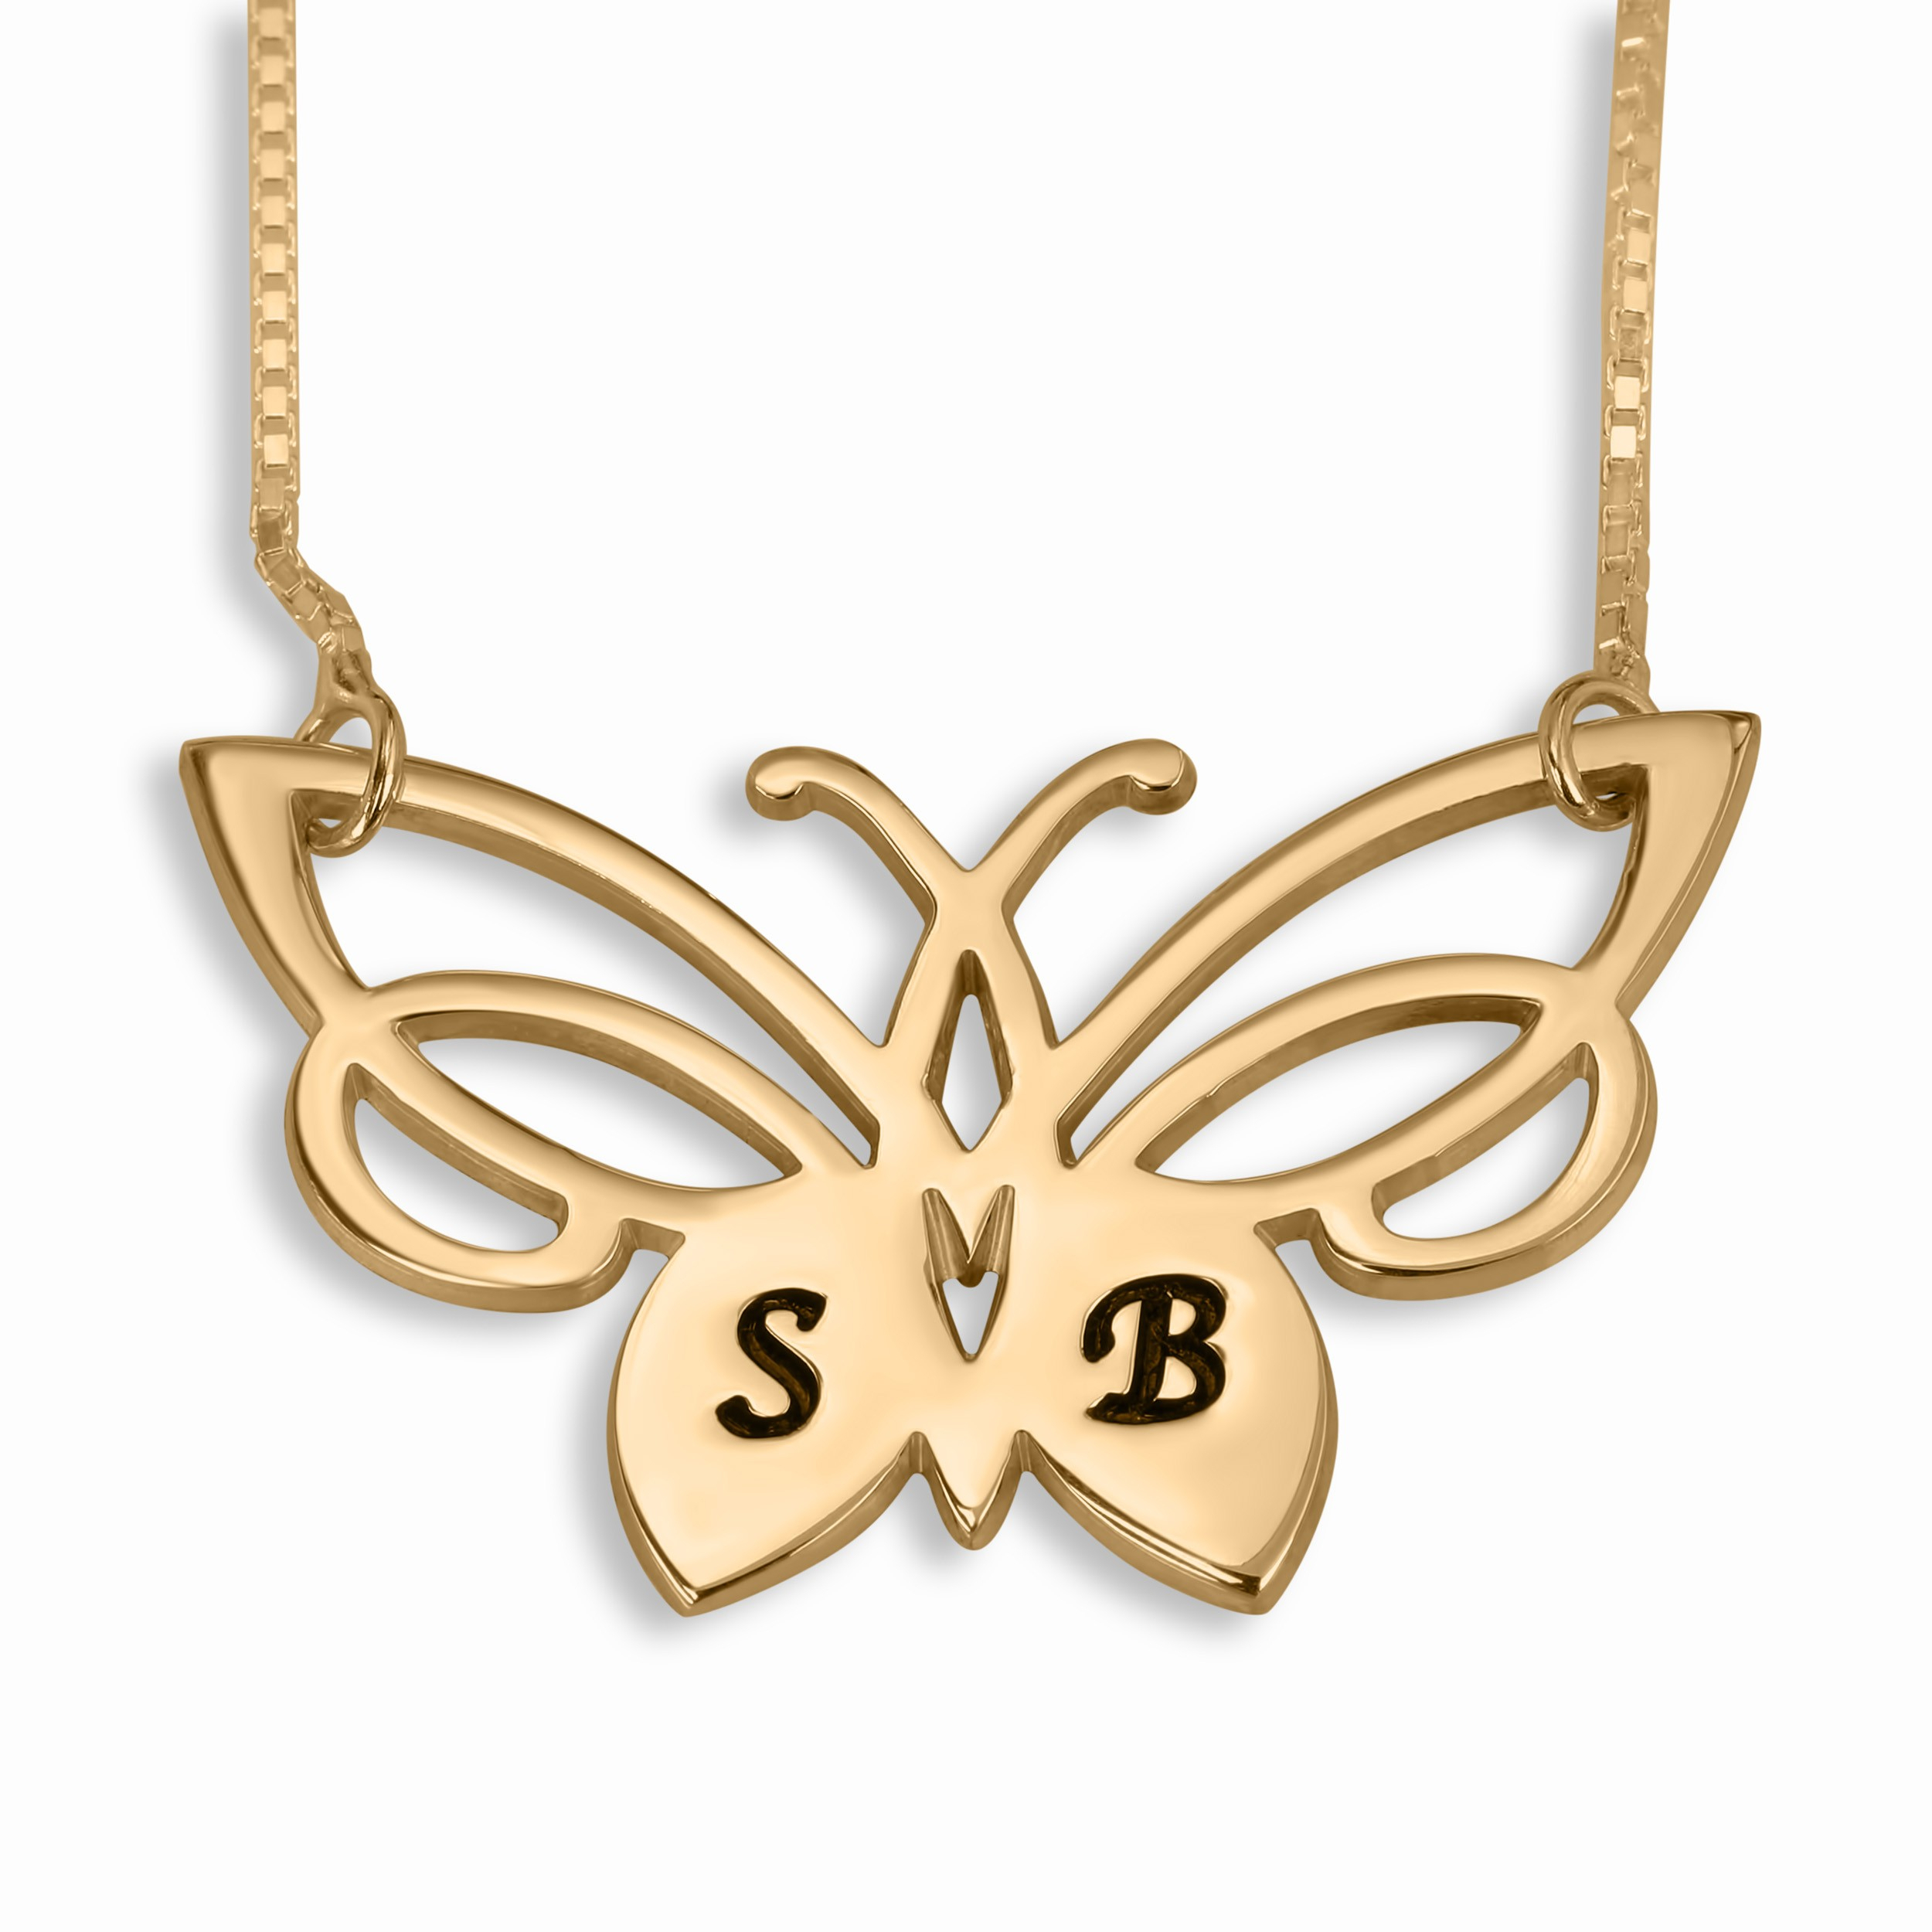 Initials Necklace, Lacy Butterfly, 24K Gold Plated With Regard To Best And Newest Sparkling Butterfly Y  Necklaces (View 15 of 25)